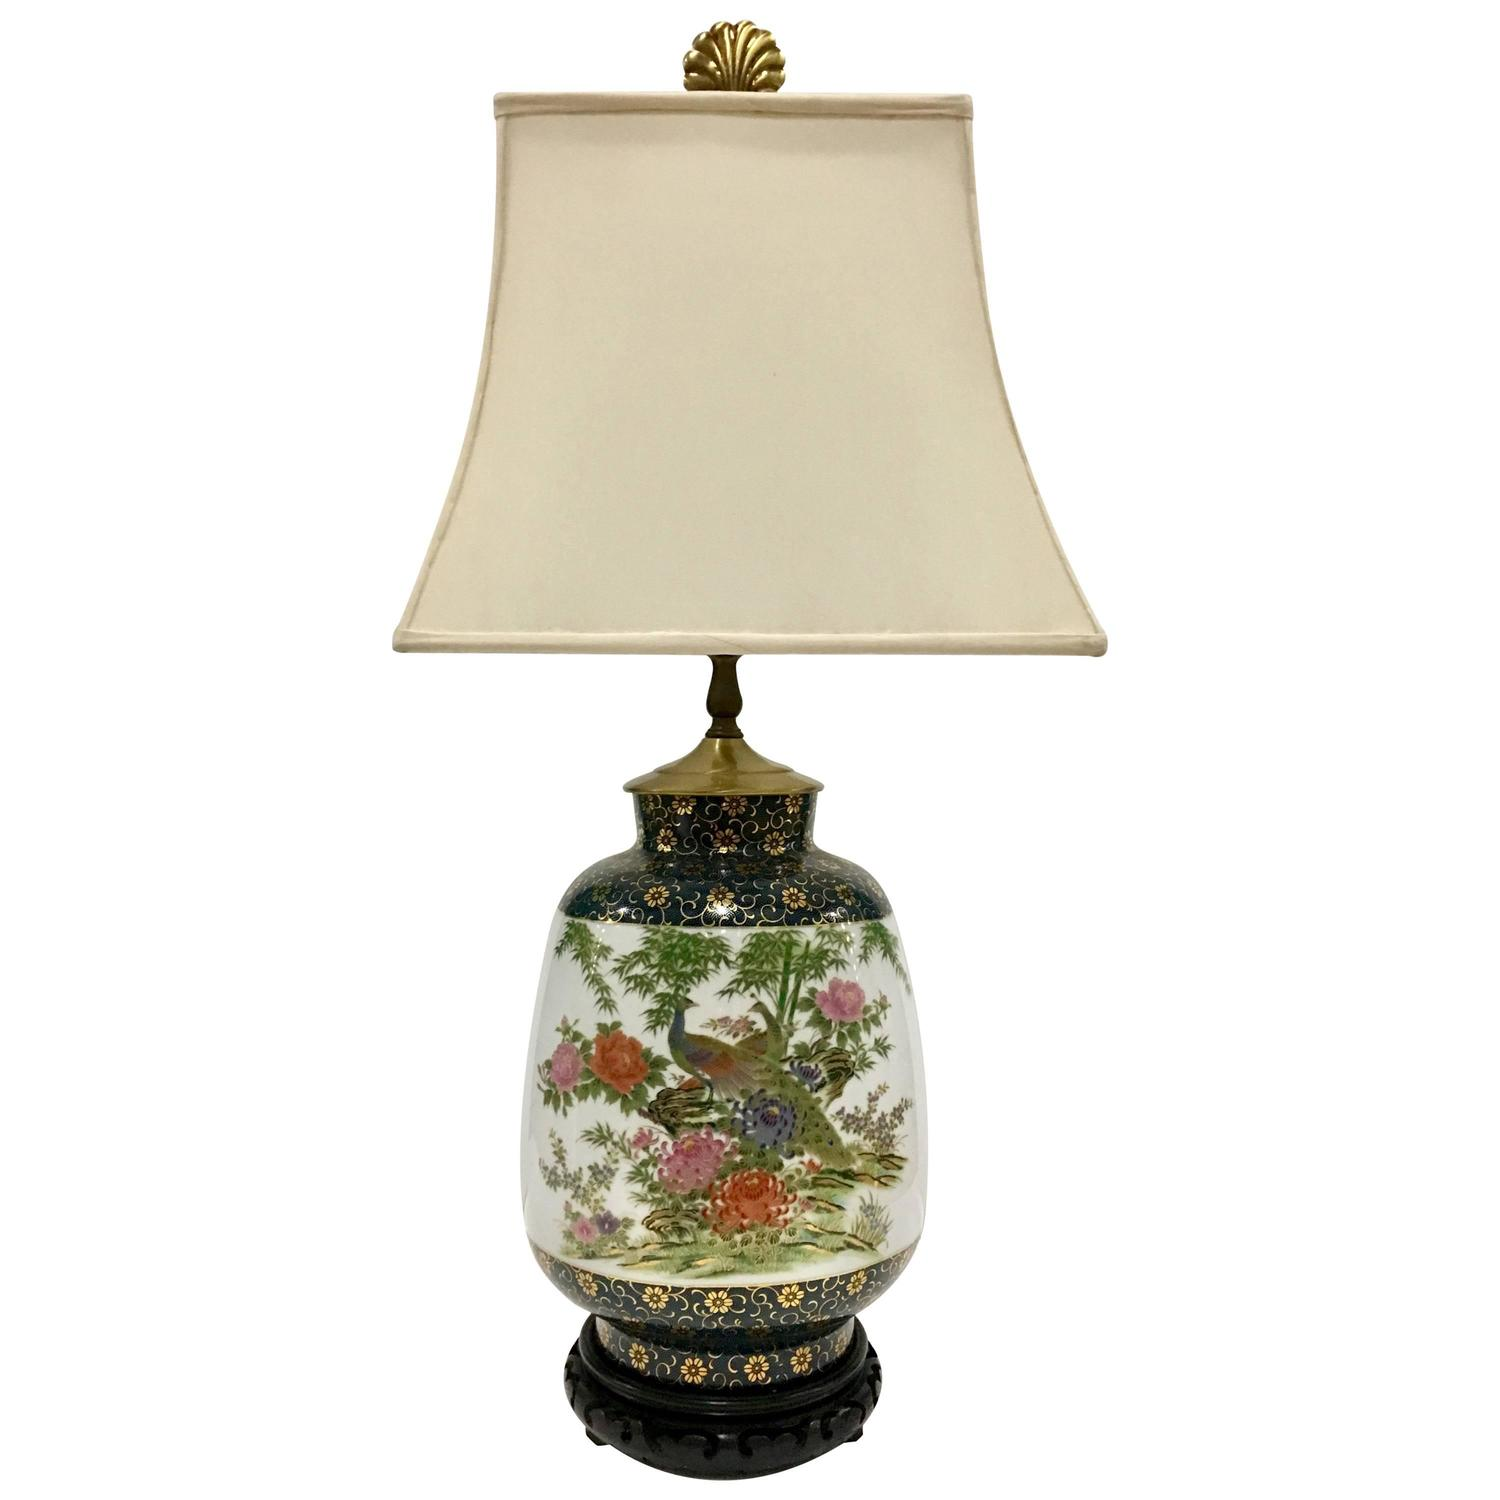 Vintage frederick cooper hand painted porcelain and gilt peacock table lamp at 1stdibs